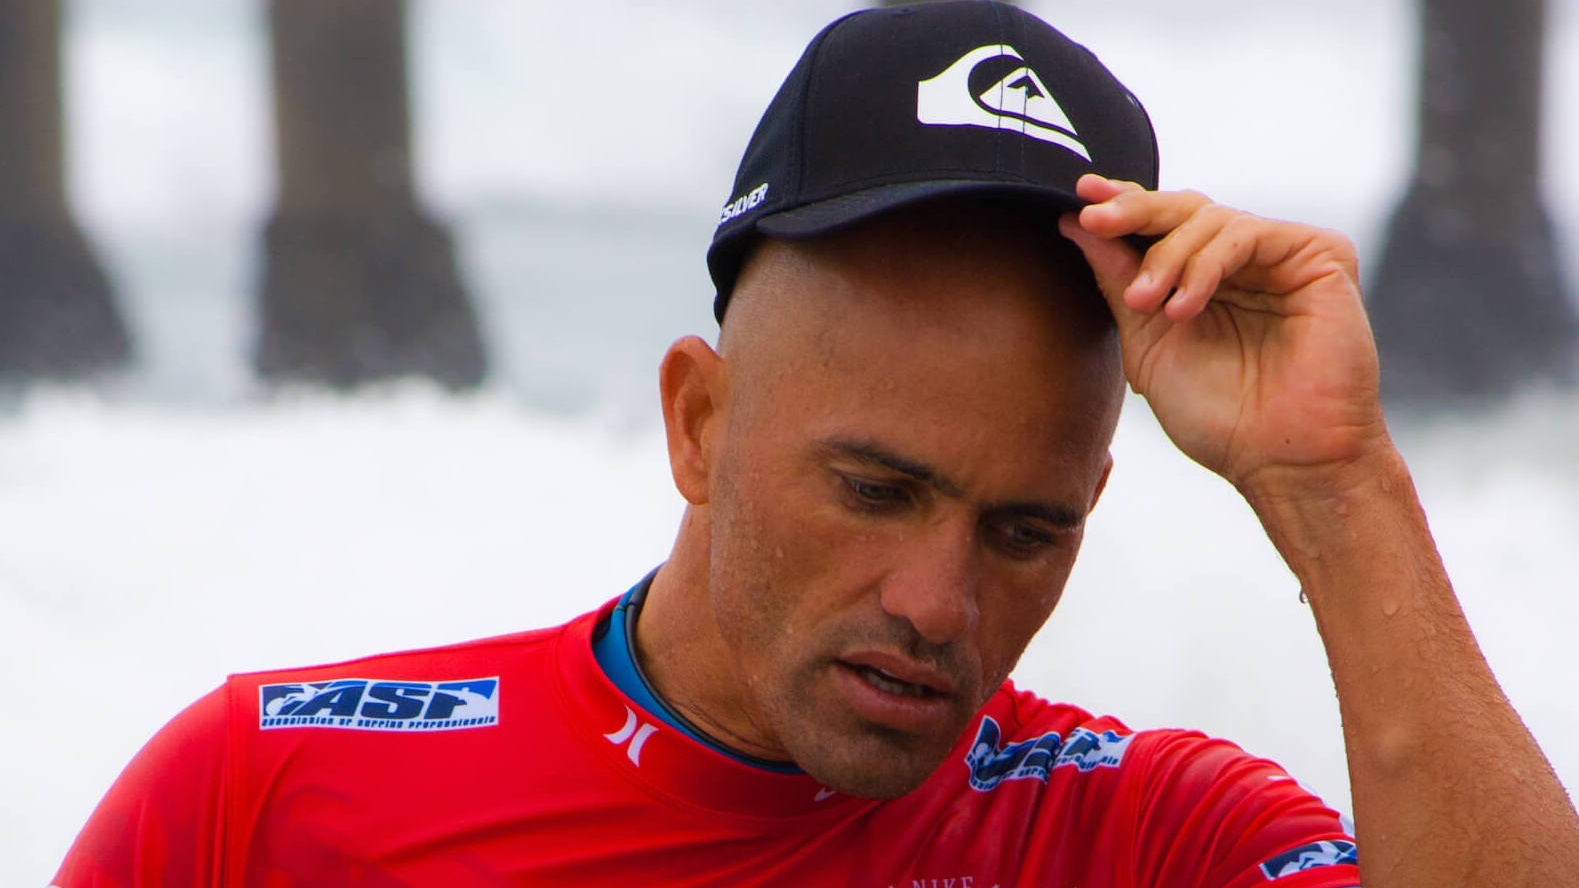 World Champion Surfer Kelly Slater Says He's 'Sad, Angry, and Feeling Guilty' About Factory Farming